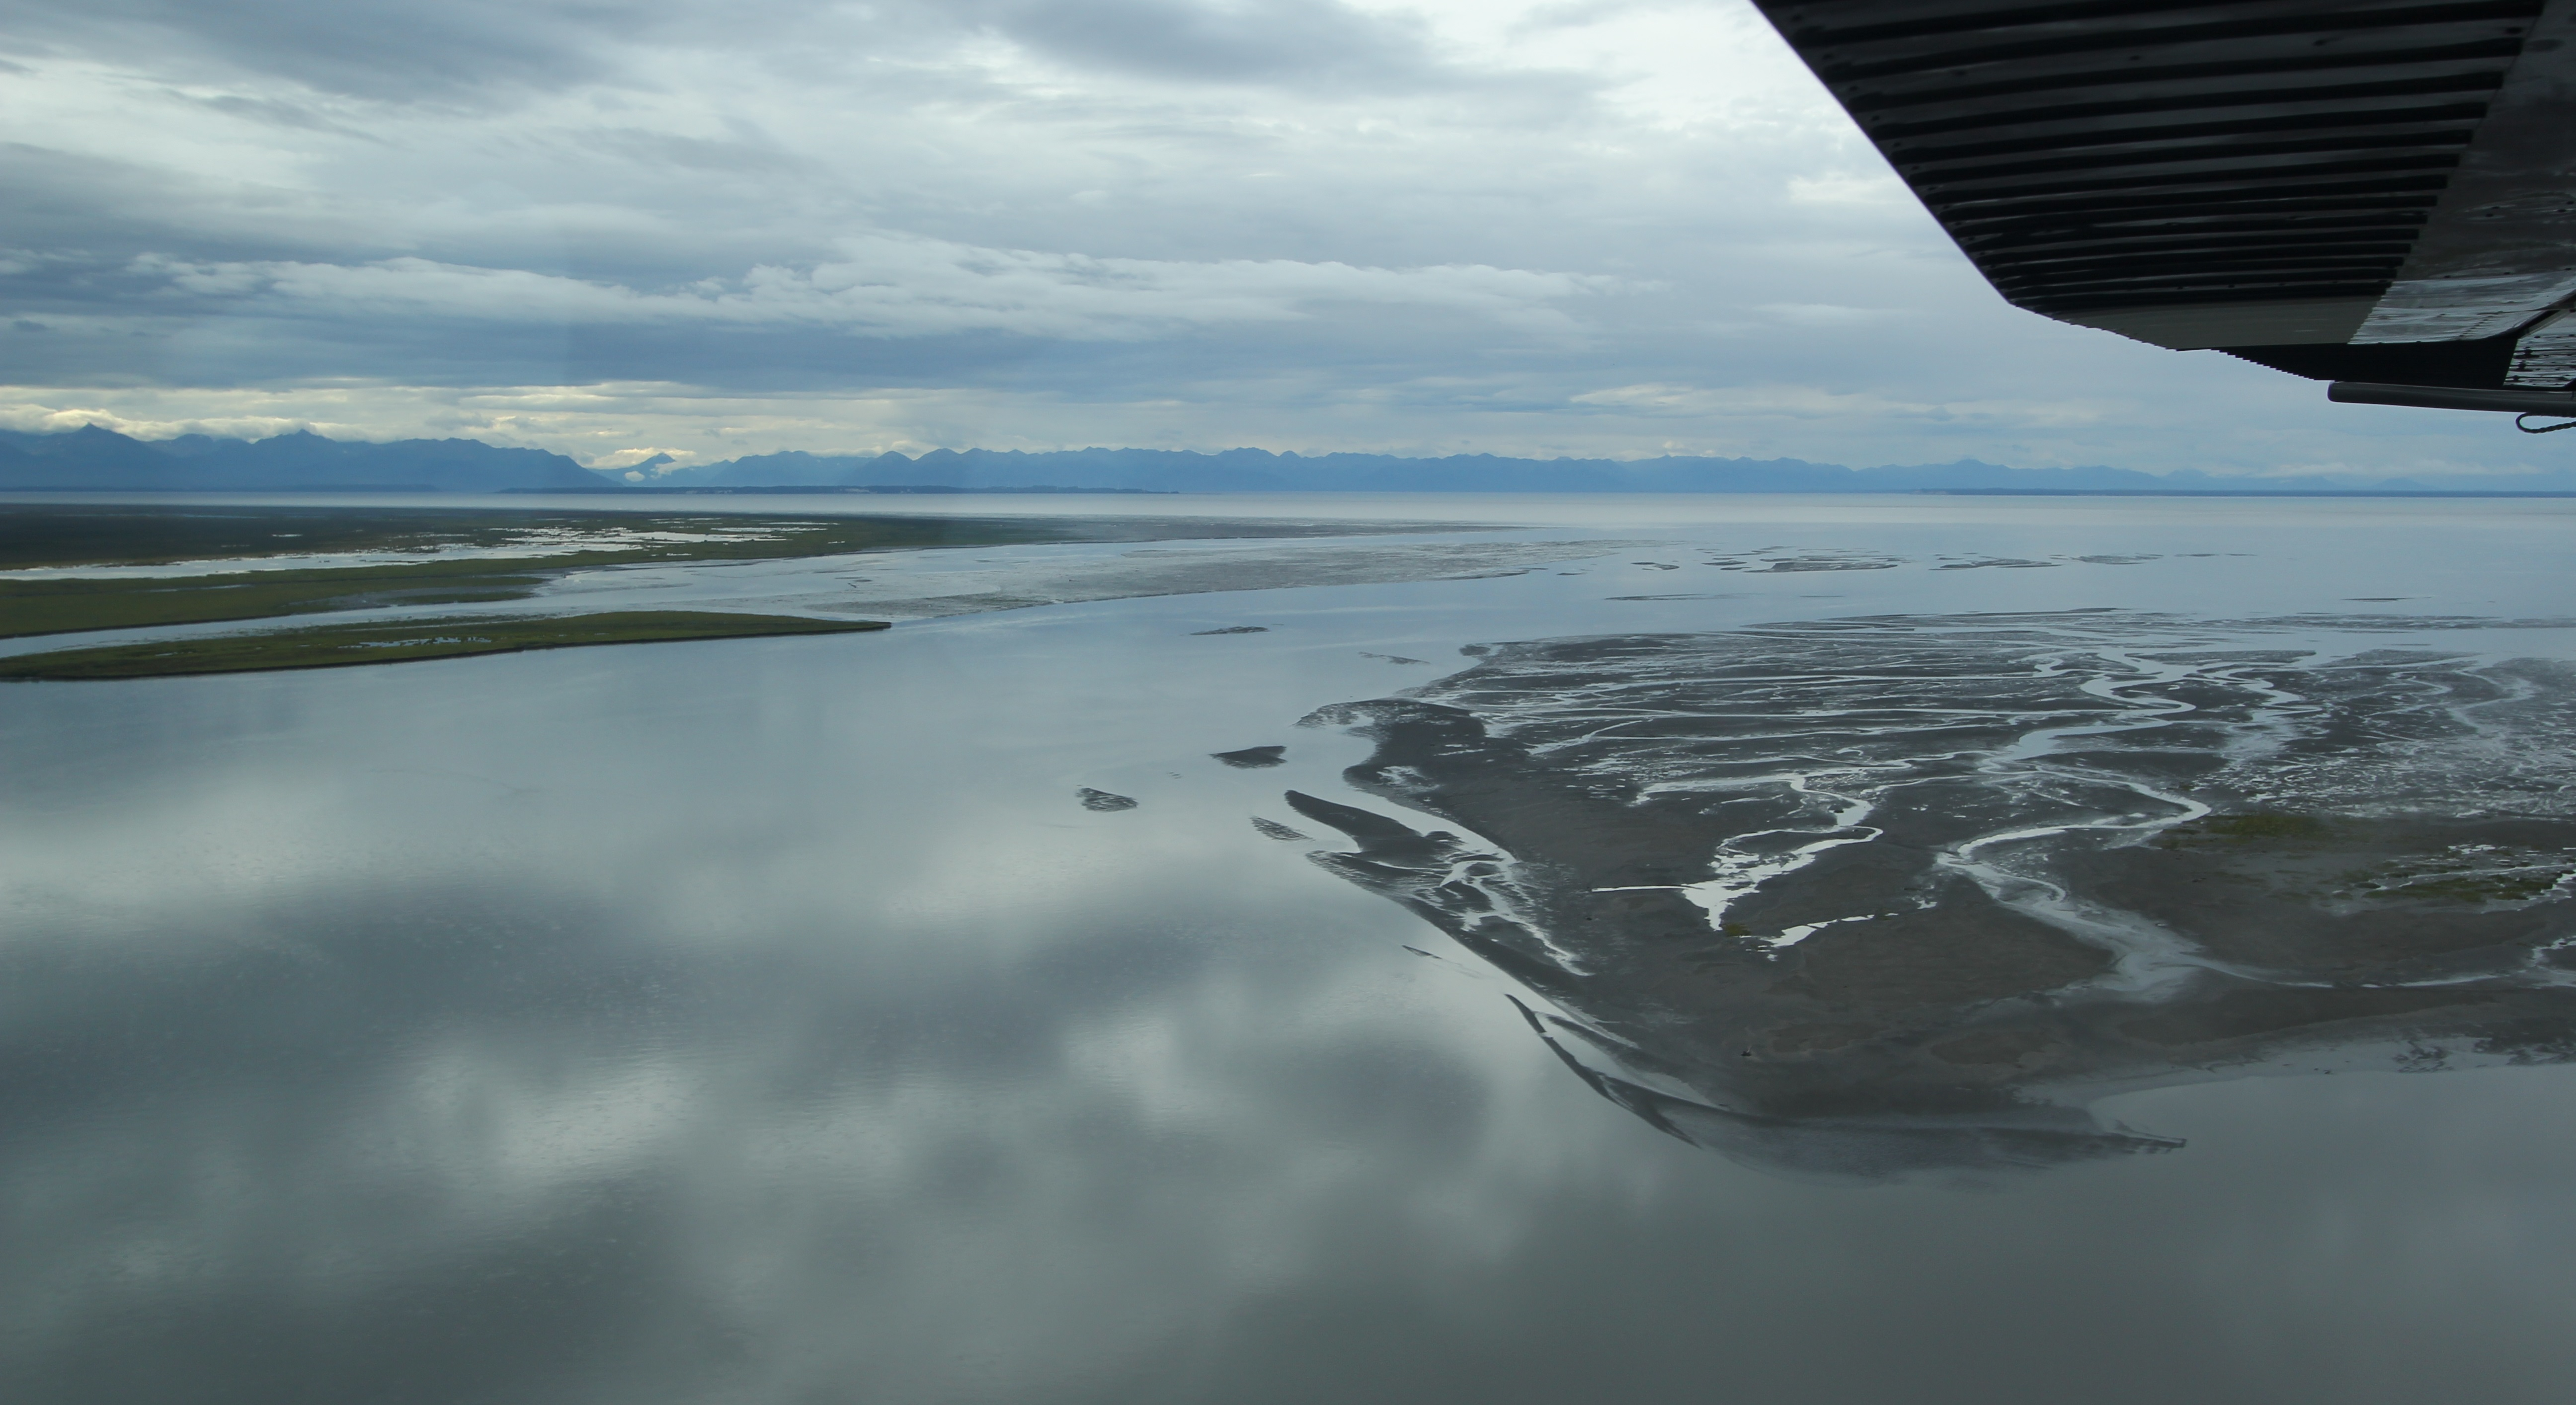 At the mouth of the Susitna River as it flows into Cook Inlet.